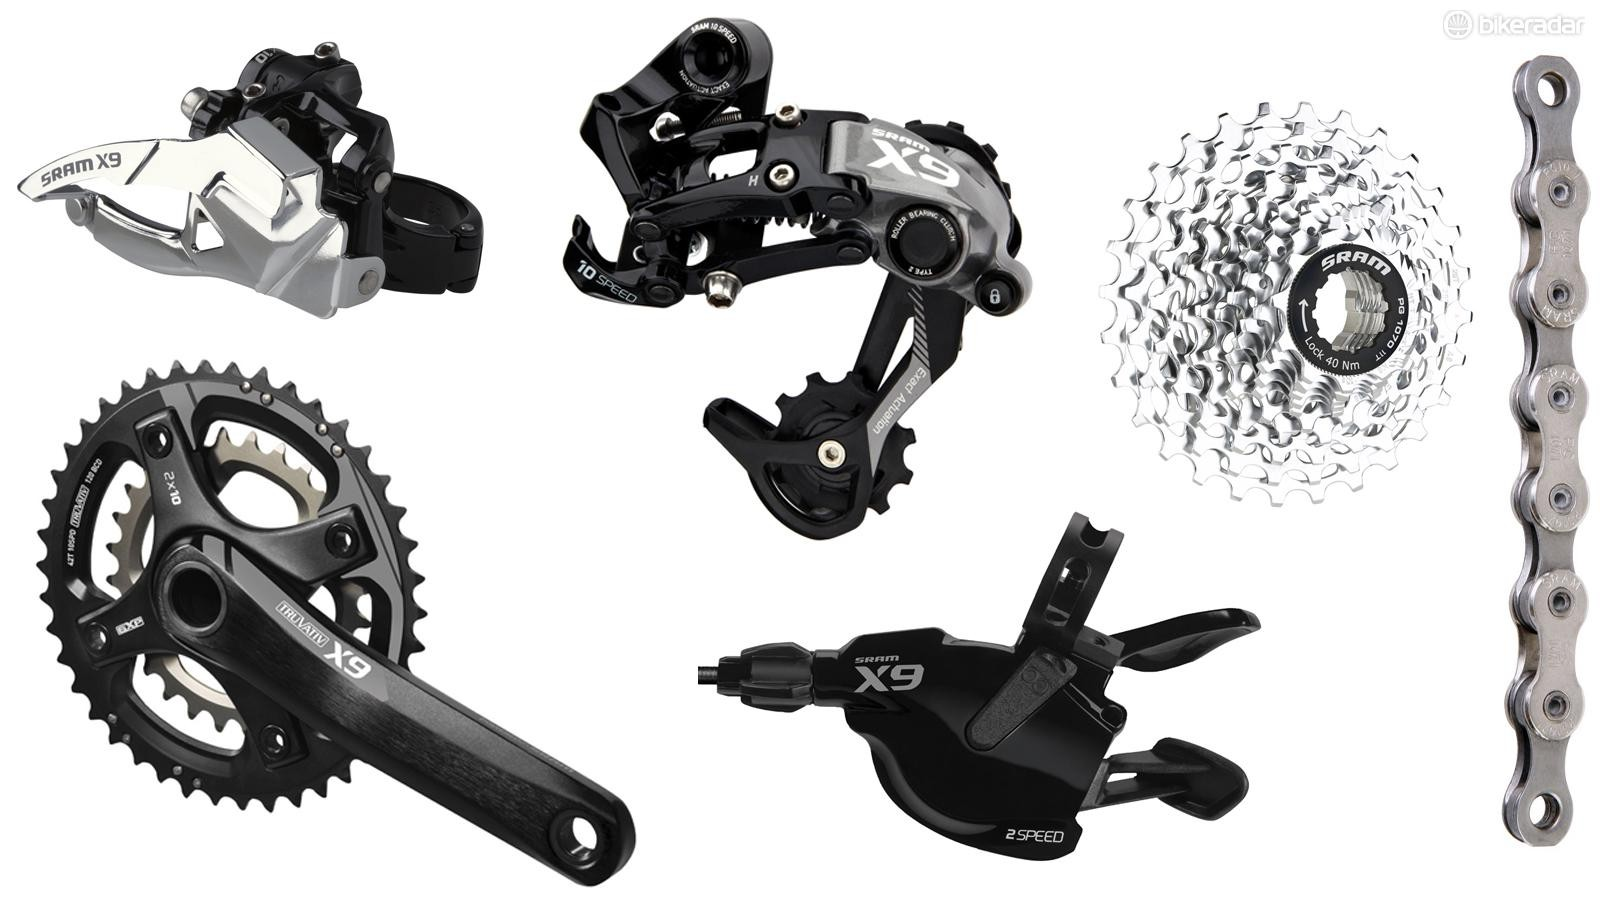 Equivalent to Shimano SLX, X9 is the workhorse groupset of SRAM's range. Nearly all the performance features are present at this level, with slightly cheaper construction methods and materials keeping prices down, but the weight is higher